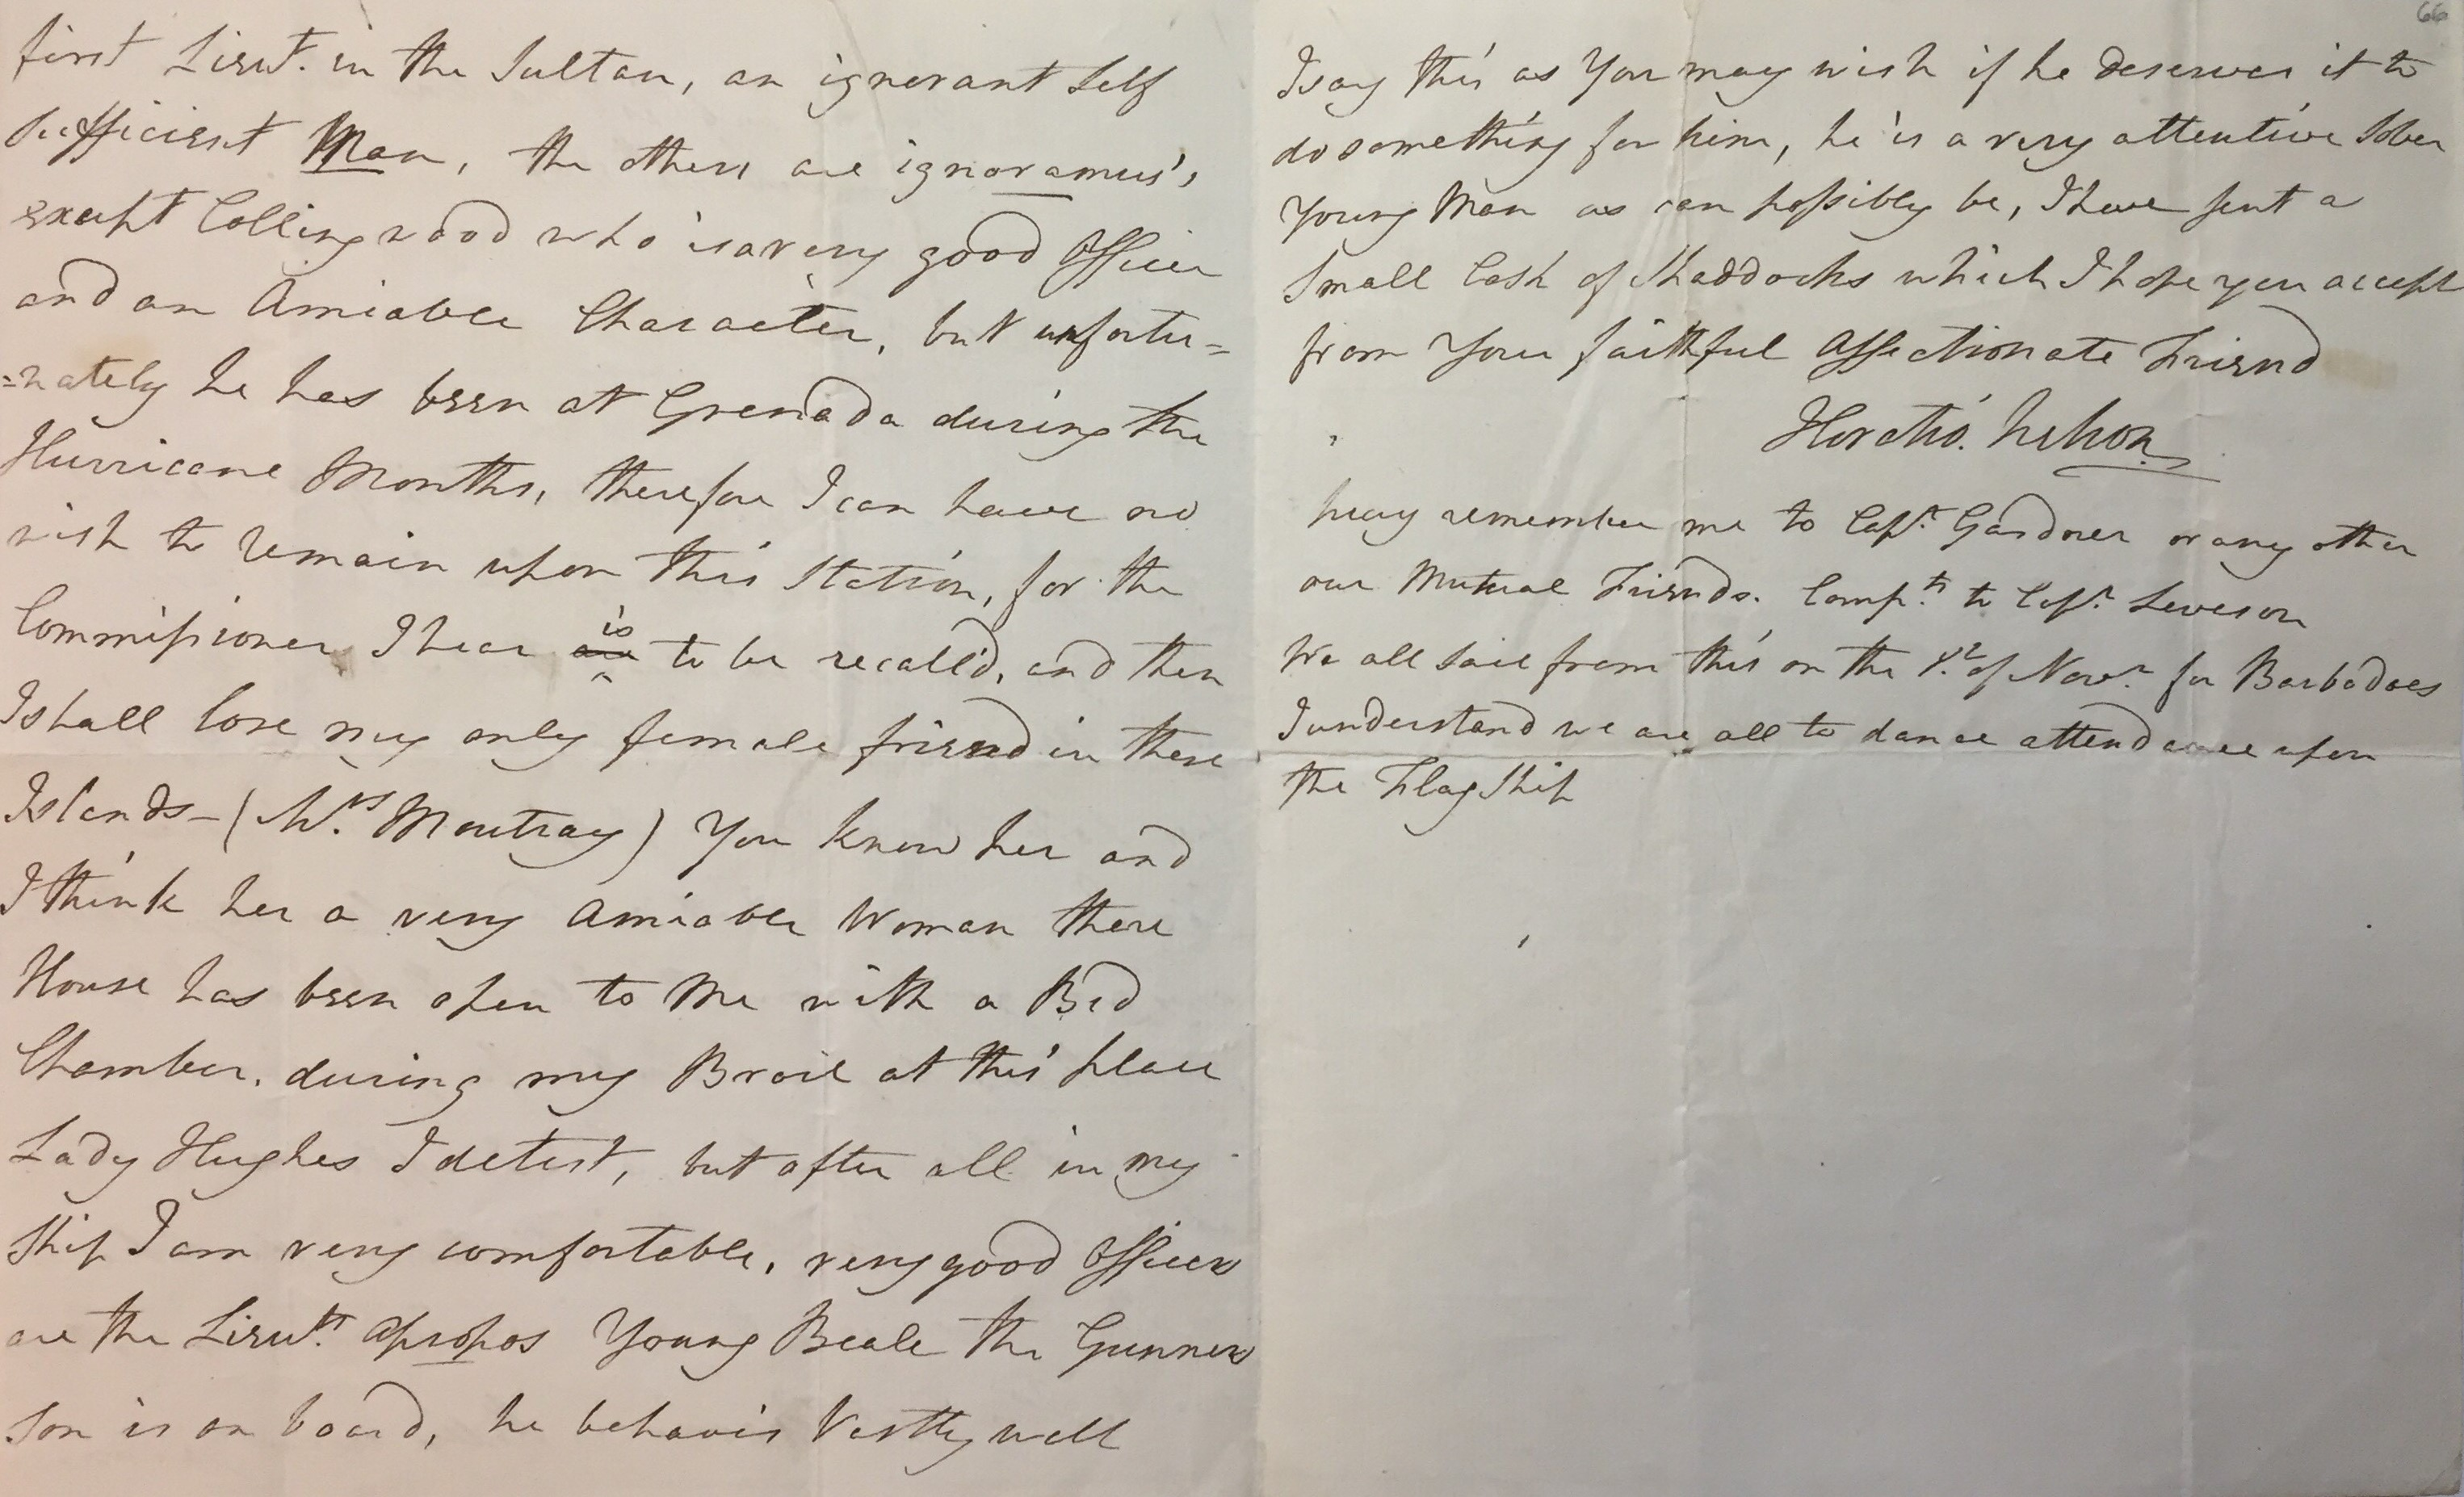 Nelson's letter to Cornwallis